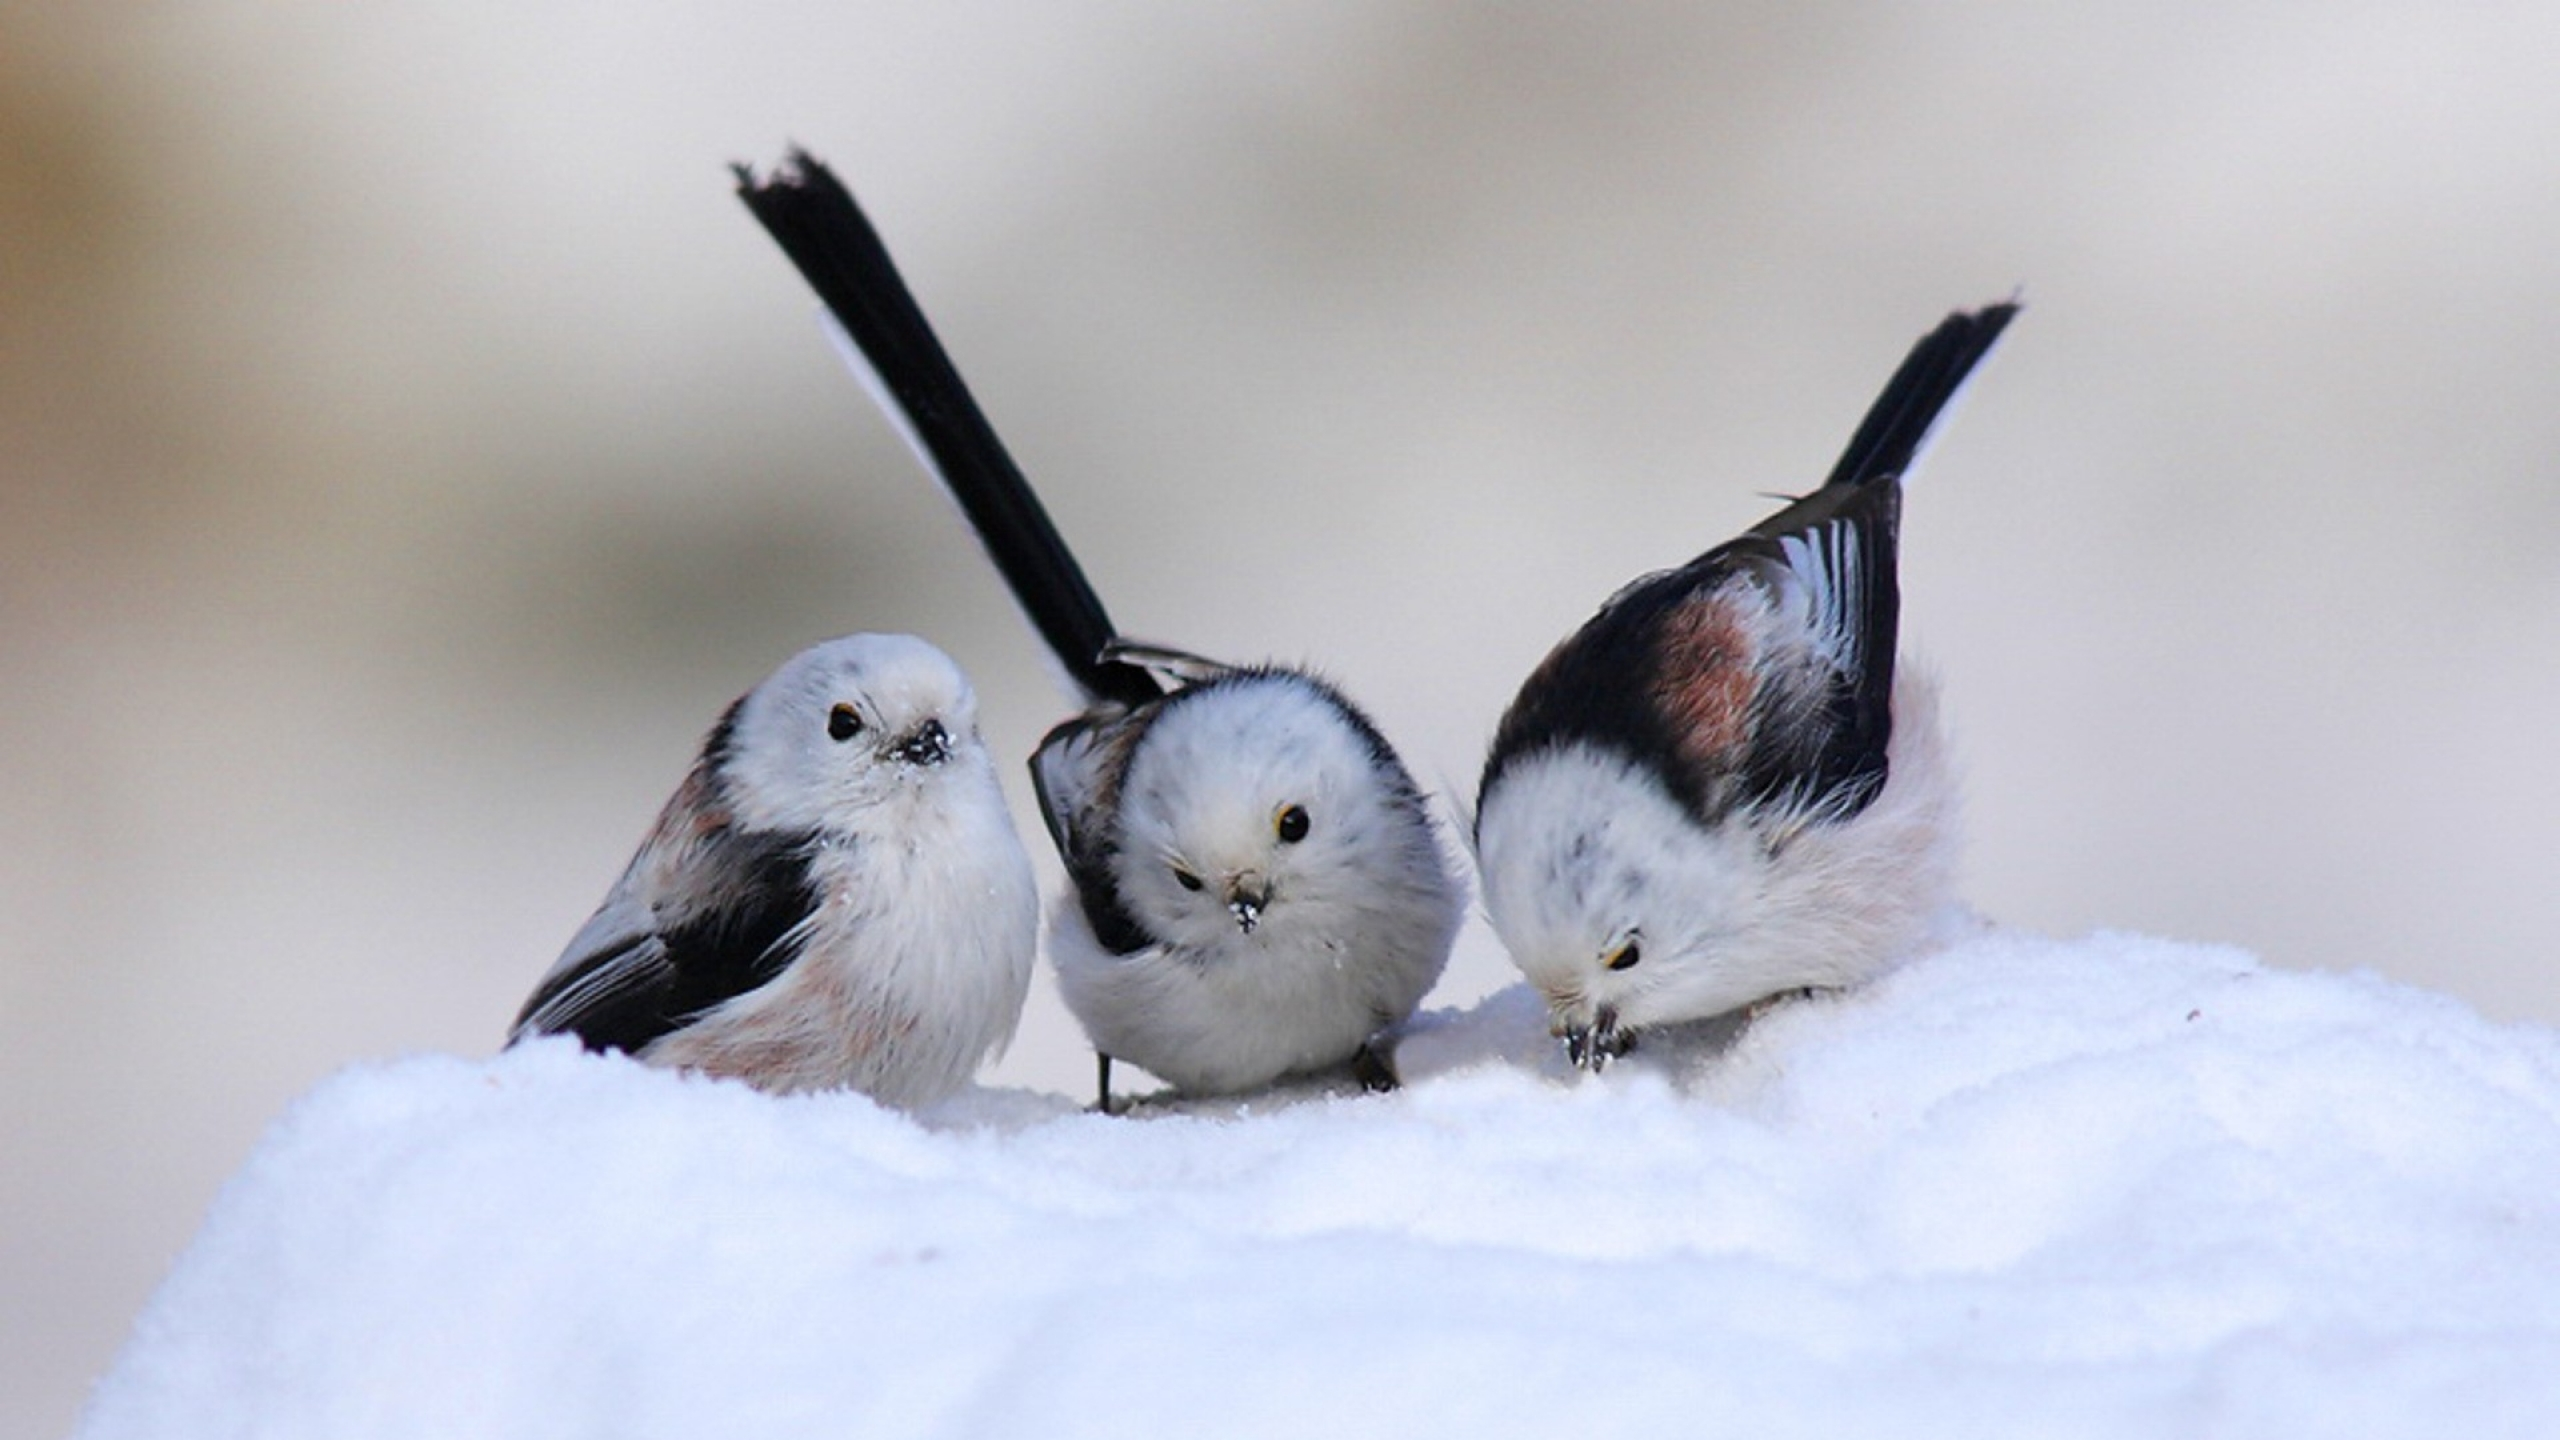 Cute Snow Bird Wallpaper